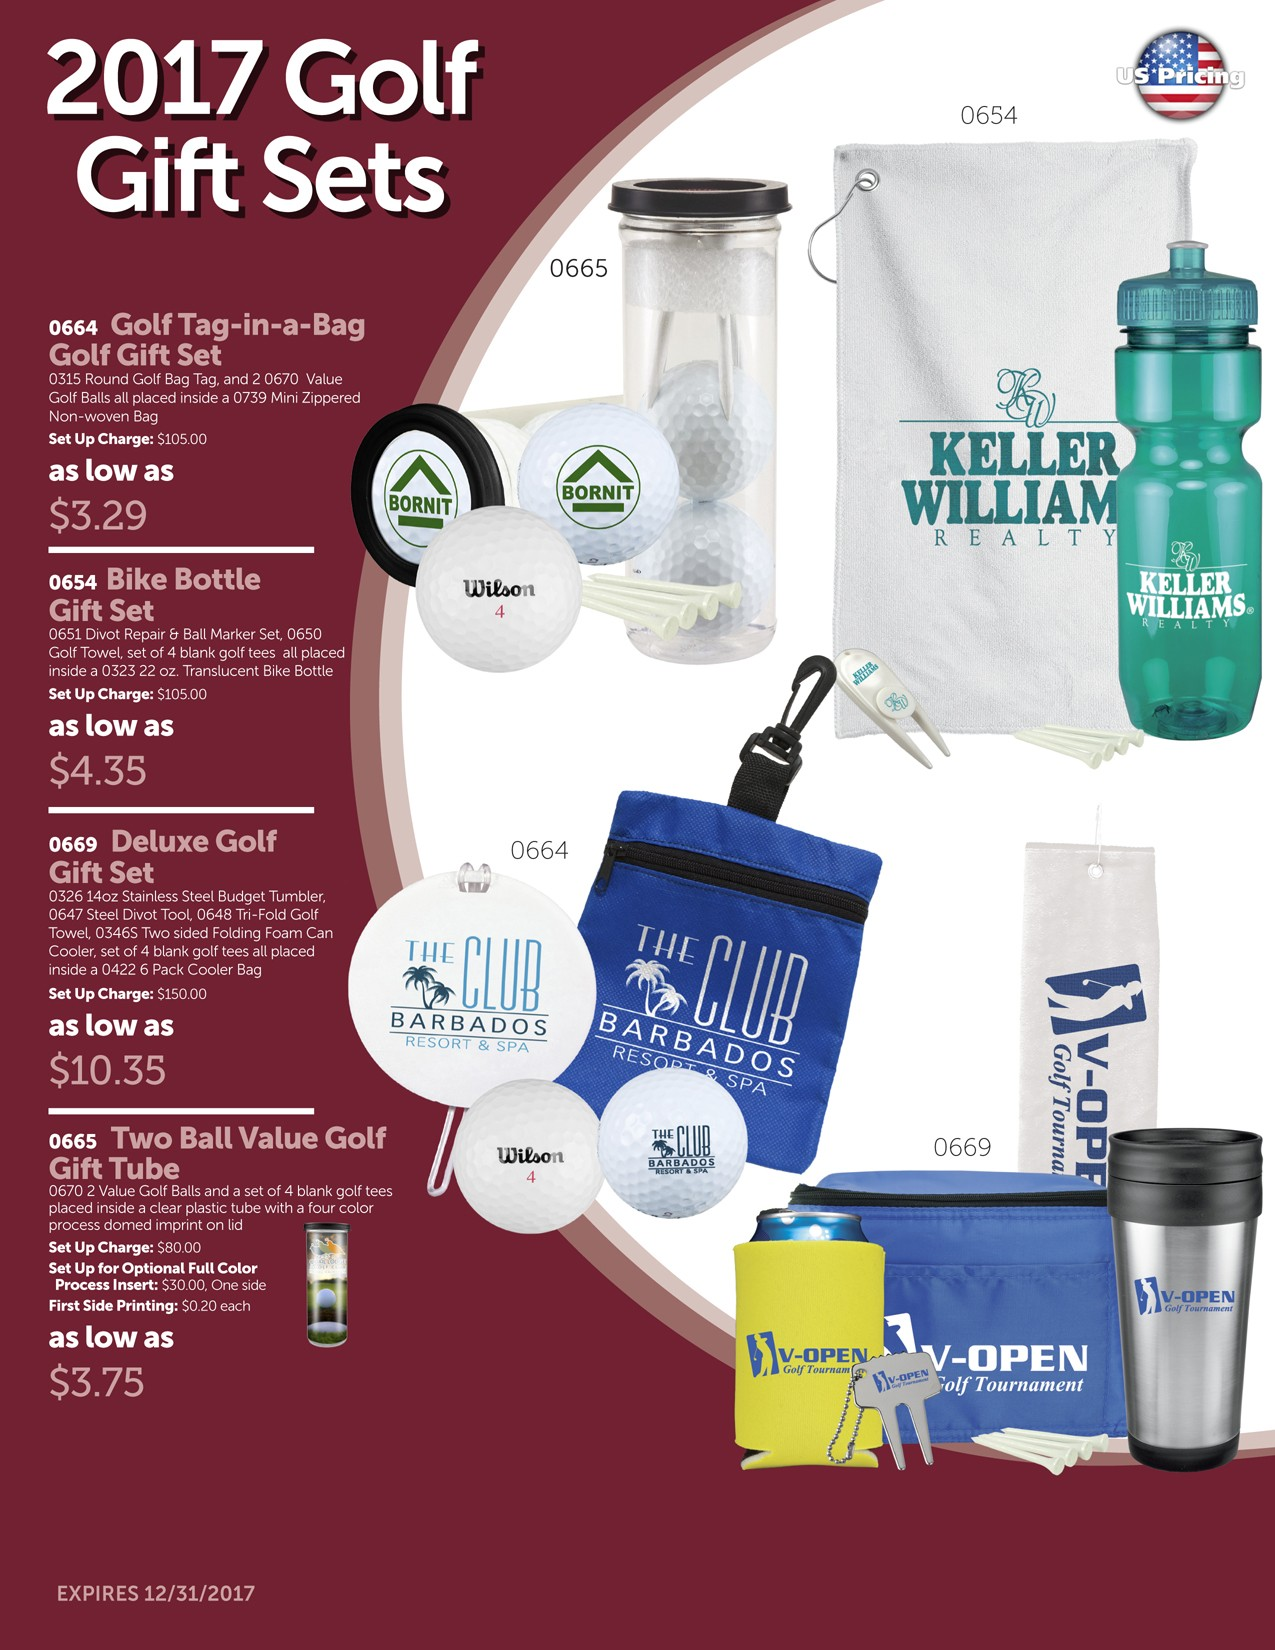 2017 Golf Gift Set Package 1B